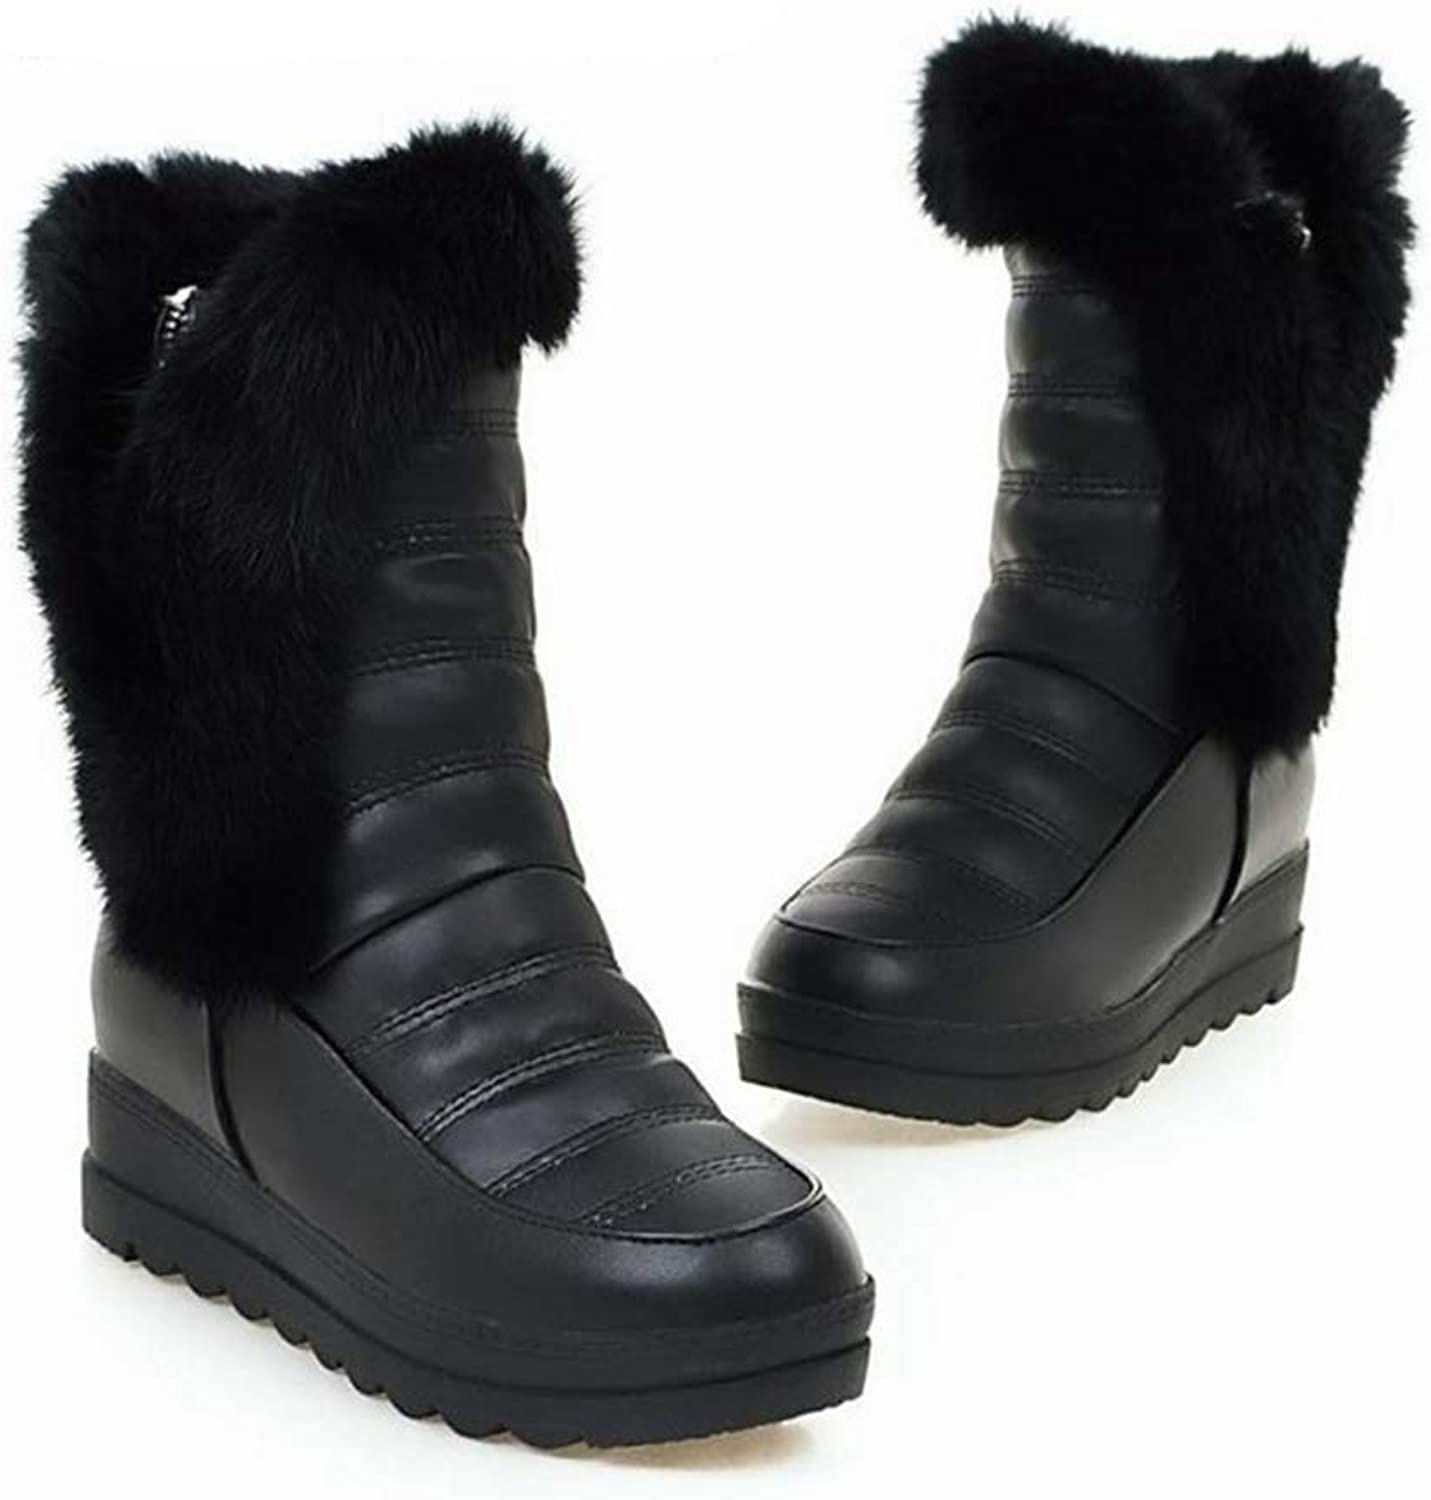 T-JULY Women Snow Boots Winter Warm Casual shoes Platform Leather Solid color Plush Non Slip Boots with Fur Lined Girls shoes